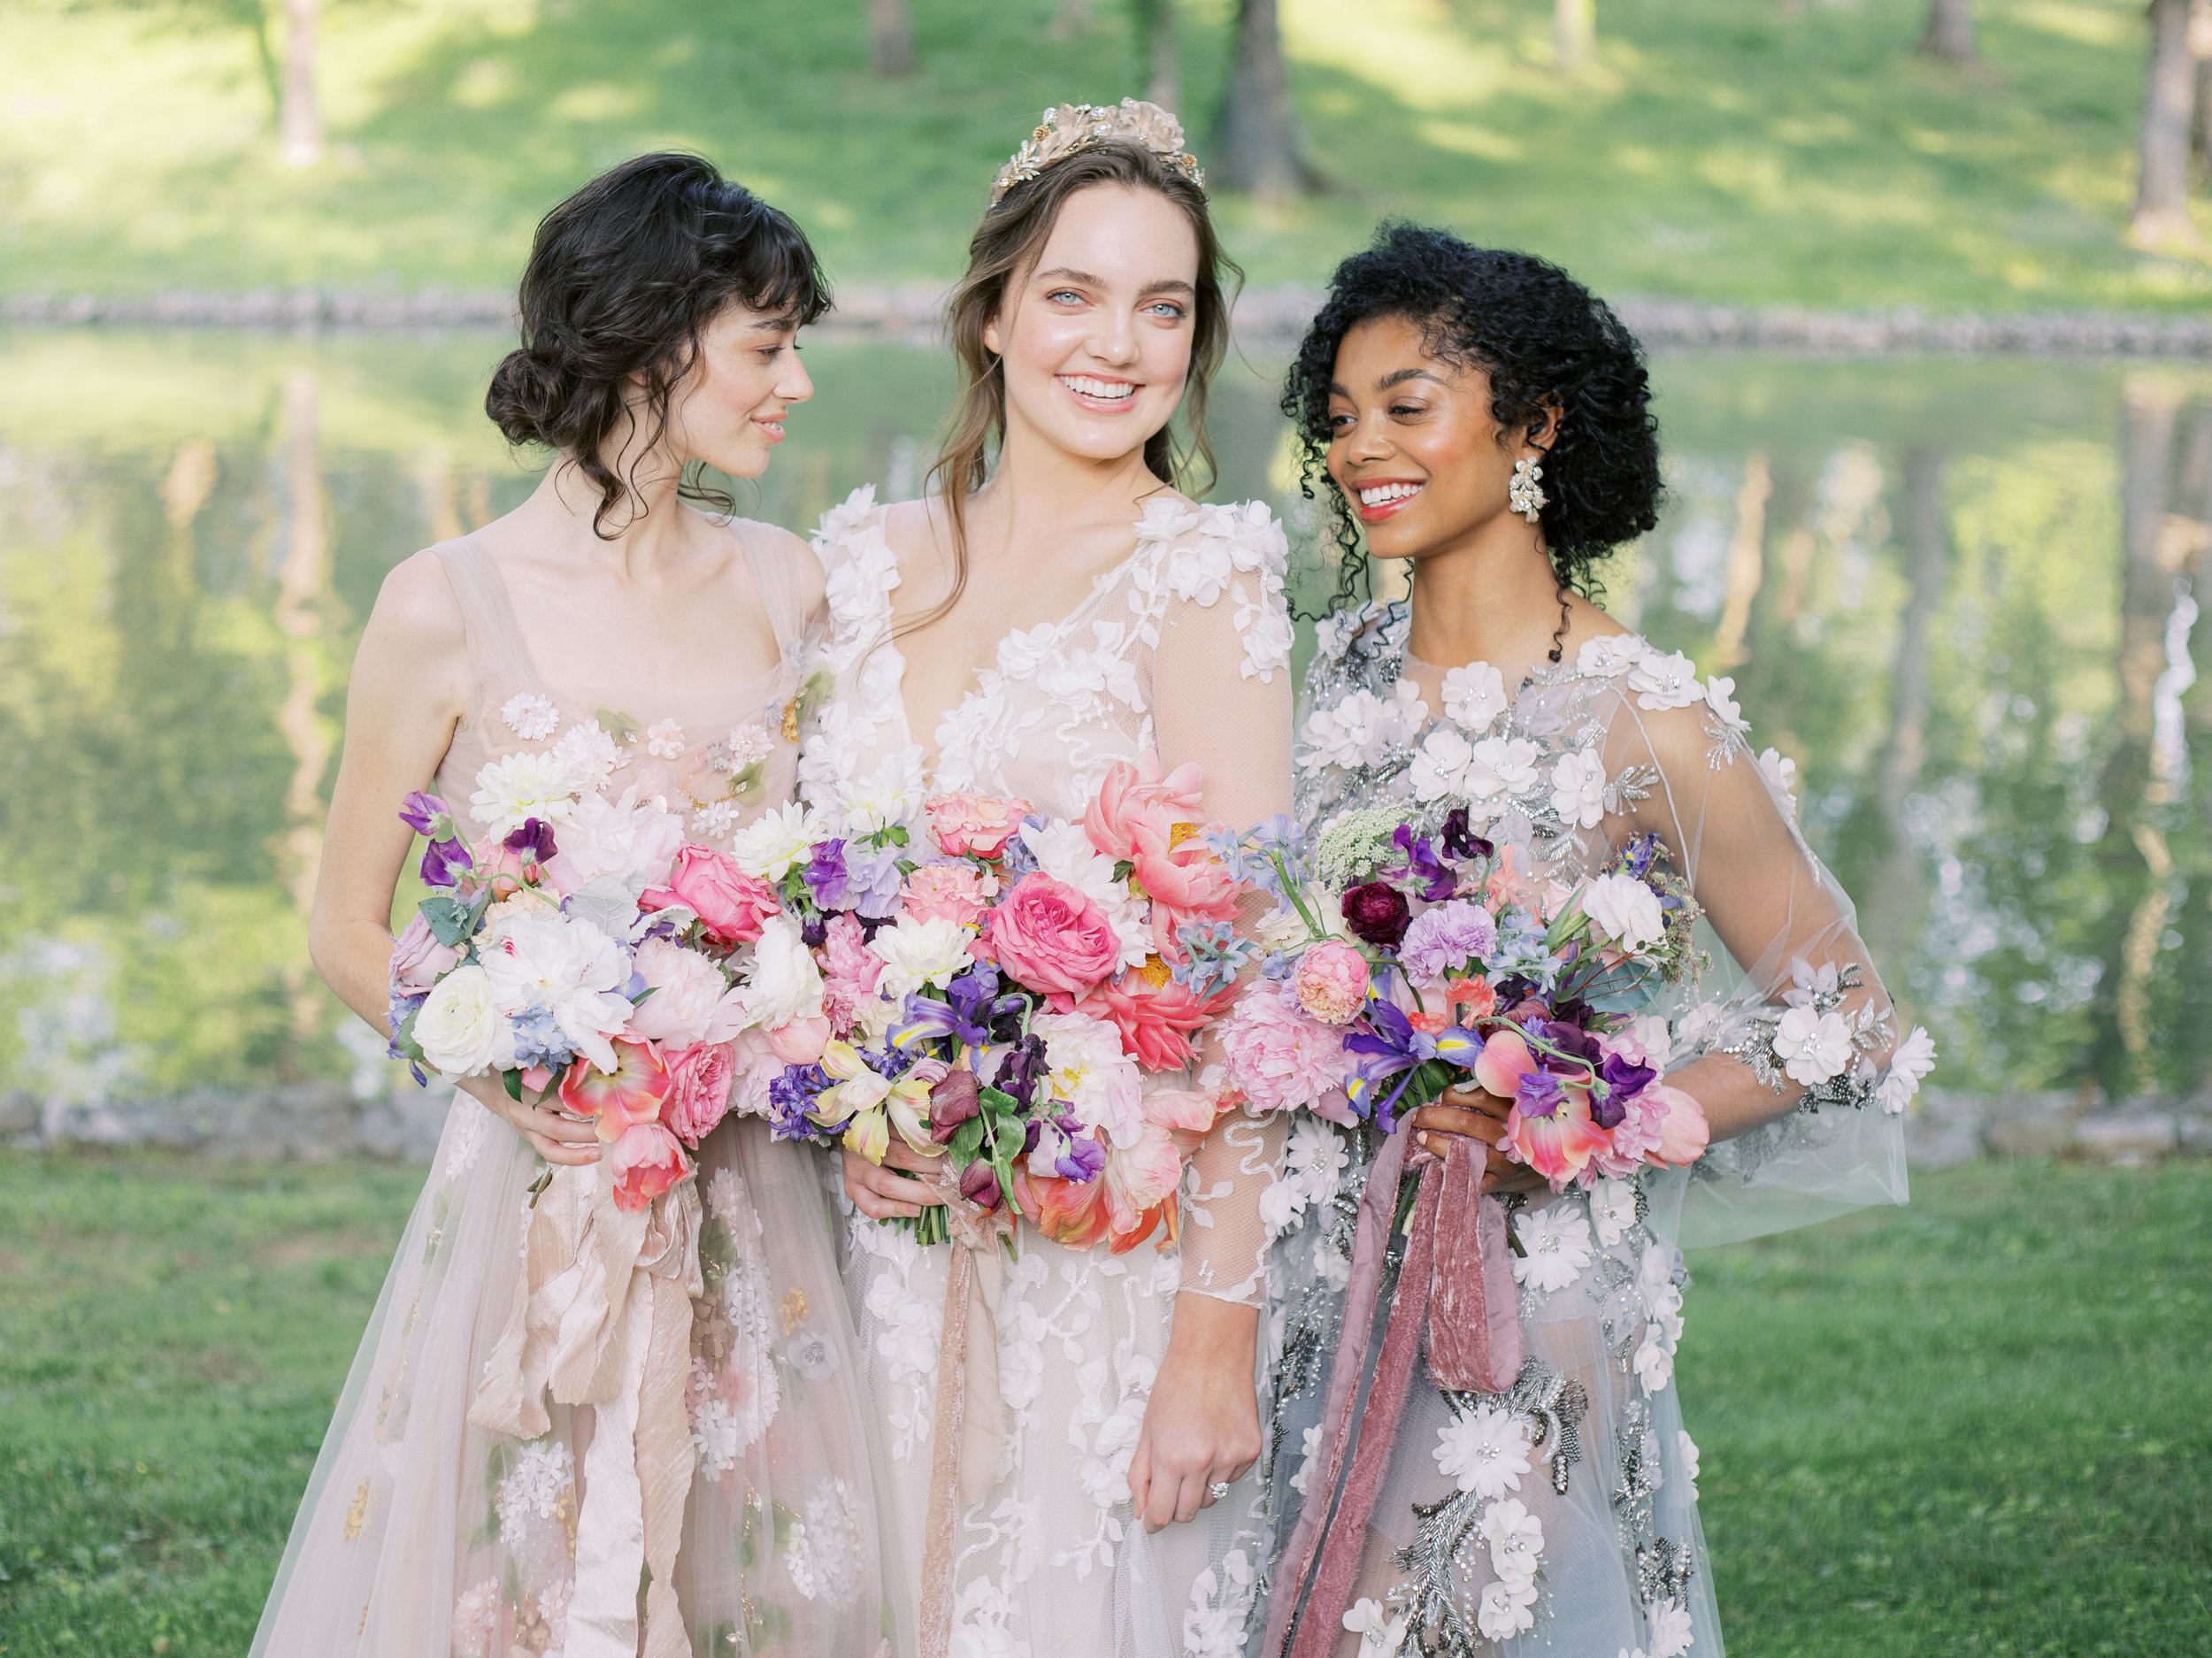 Faith Roper Photography and East Made Co Nashville wedding planner at the Estate at Cherokee Dock wedding inspired by Monet Hybrid Co-73.jpg